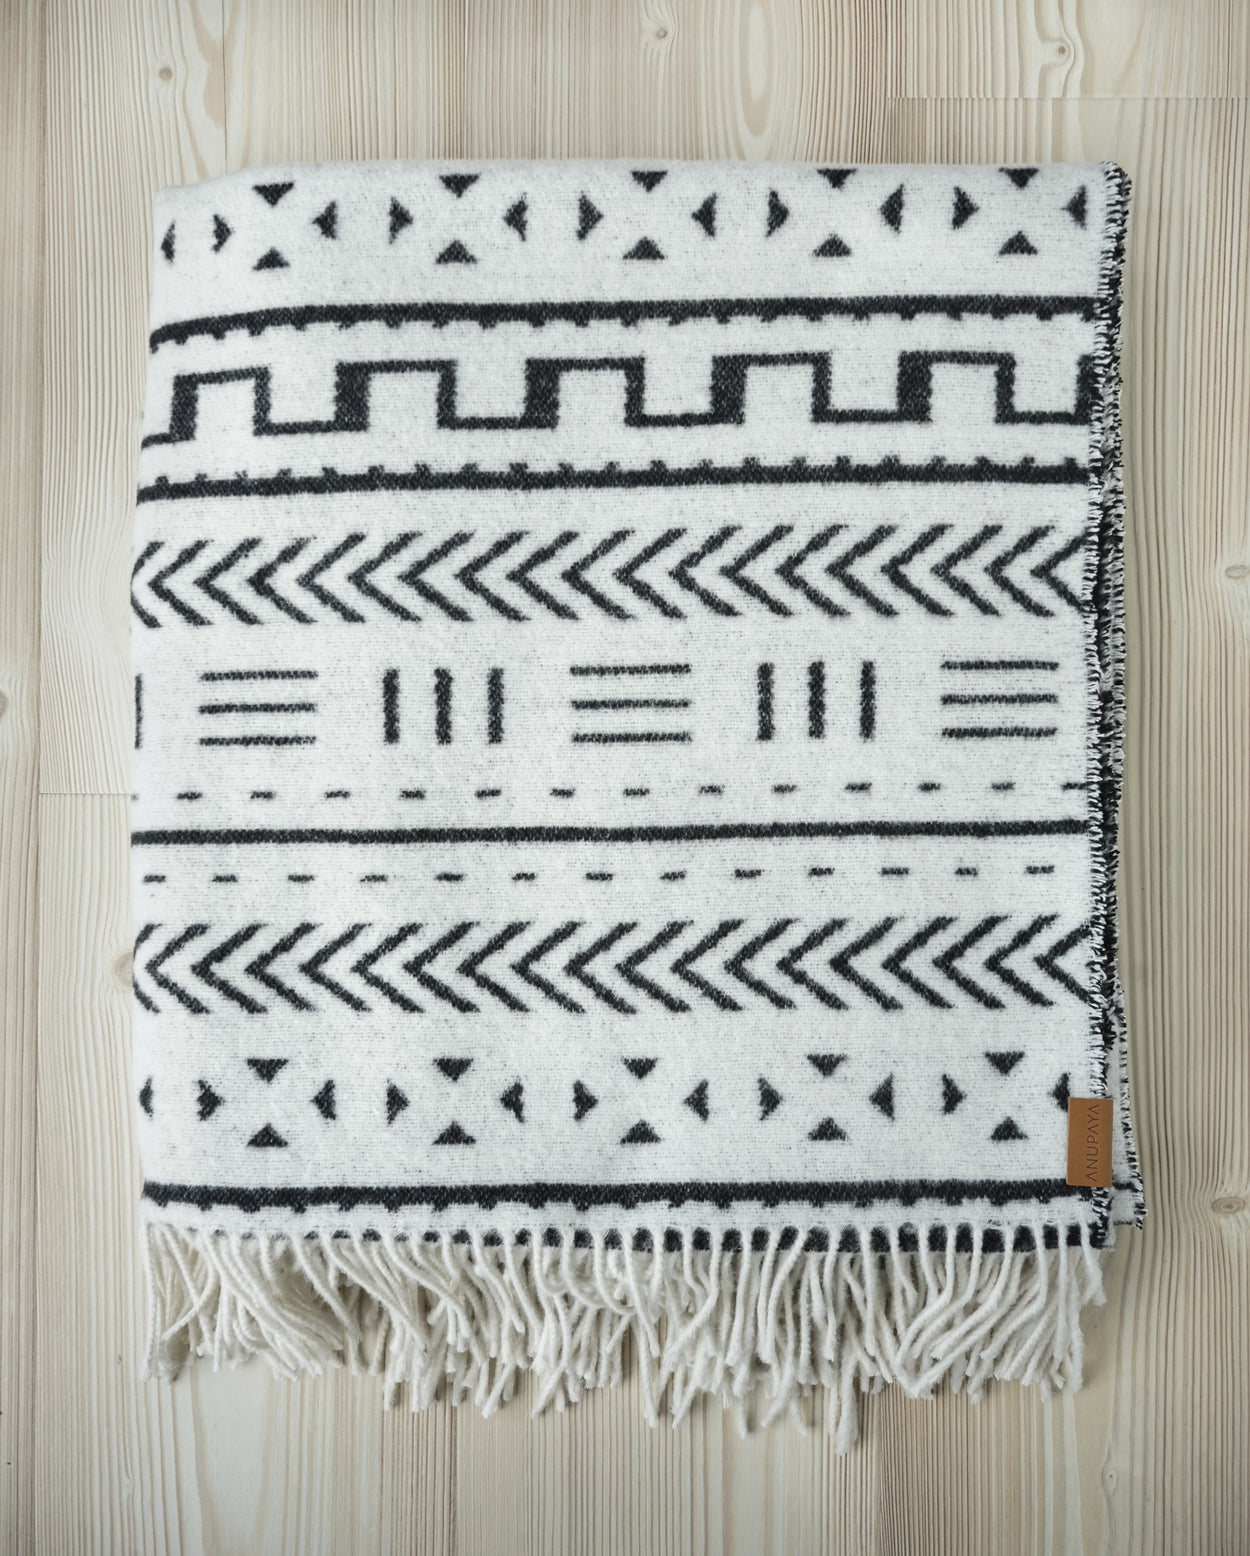 Canadian Blanket by Anupaya - Madawaska